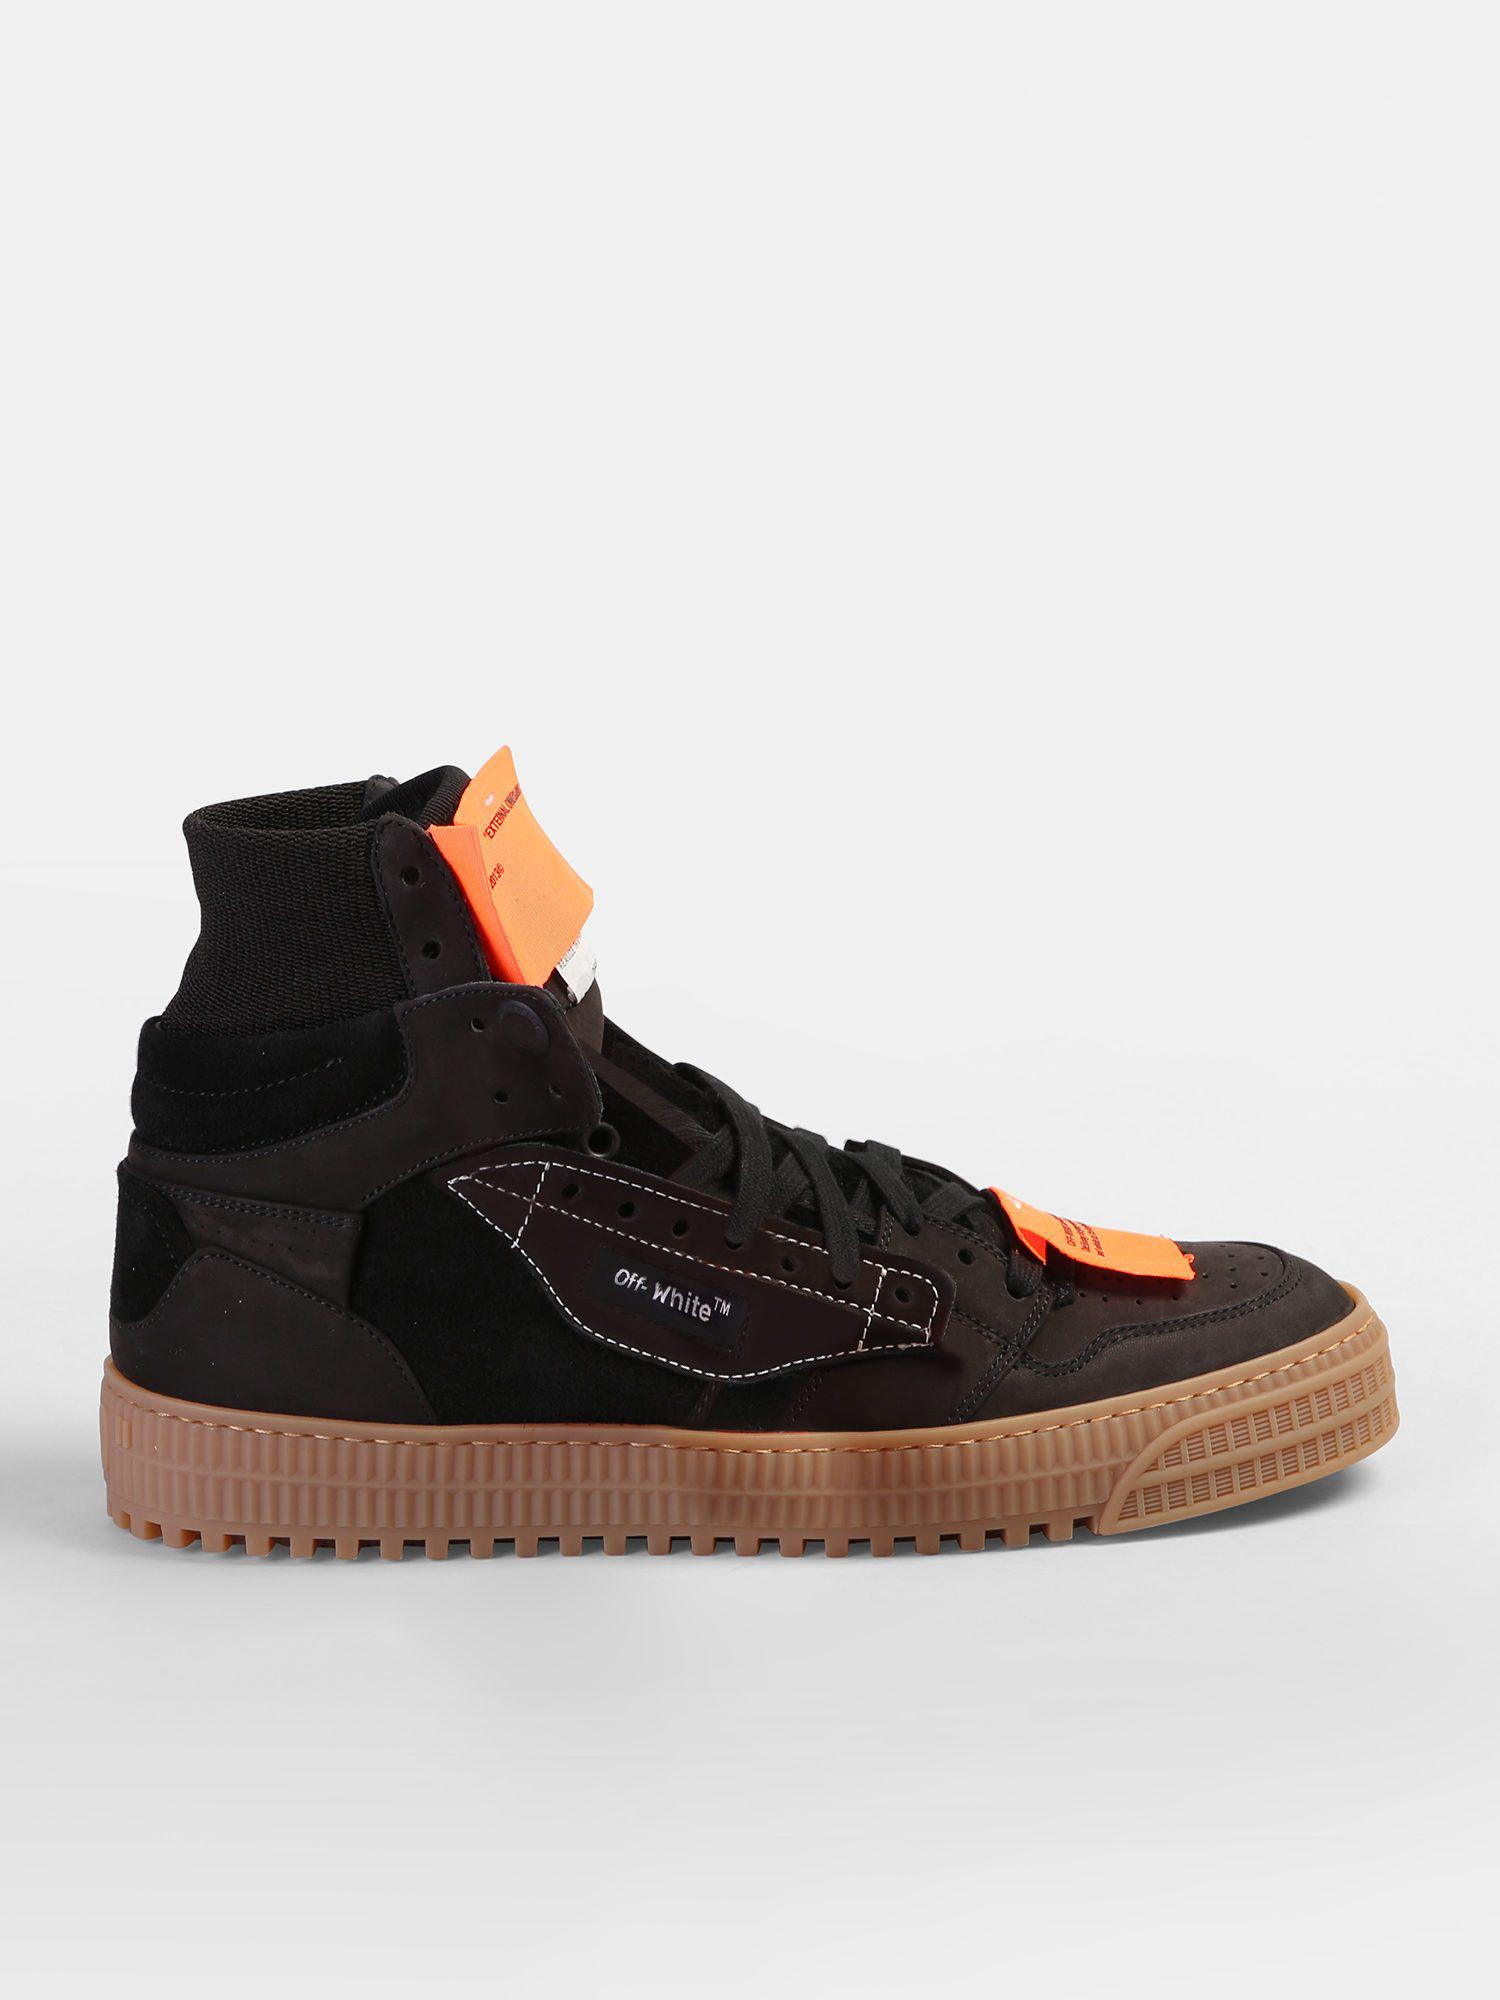 a73c39b4d03d Off-White c o Virgil Abloh. Men s Black Off Court Suede Leather Sneakers